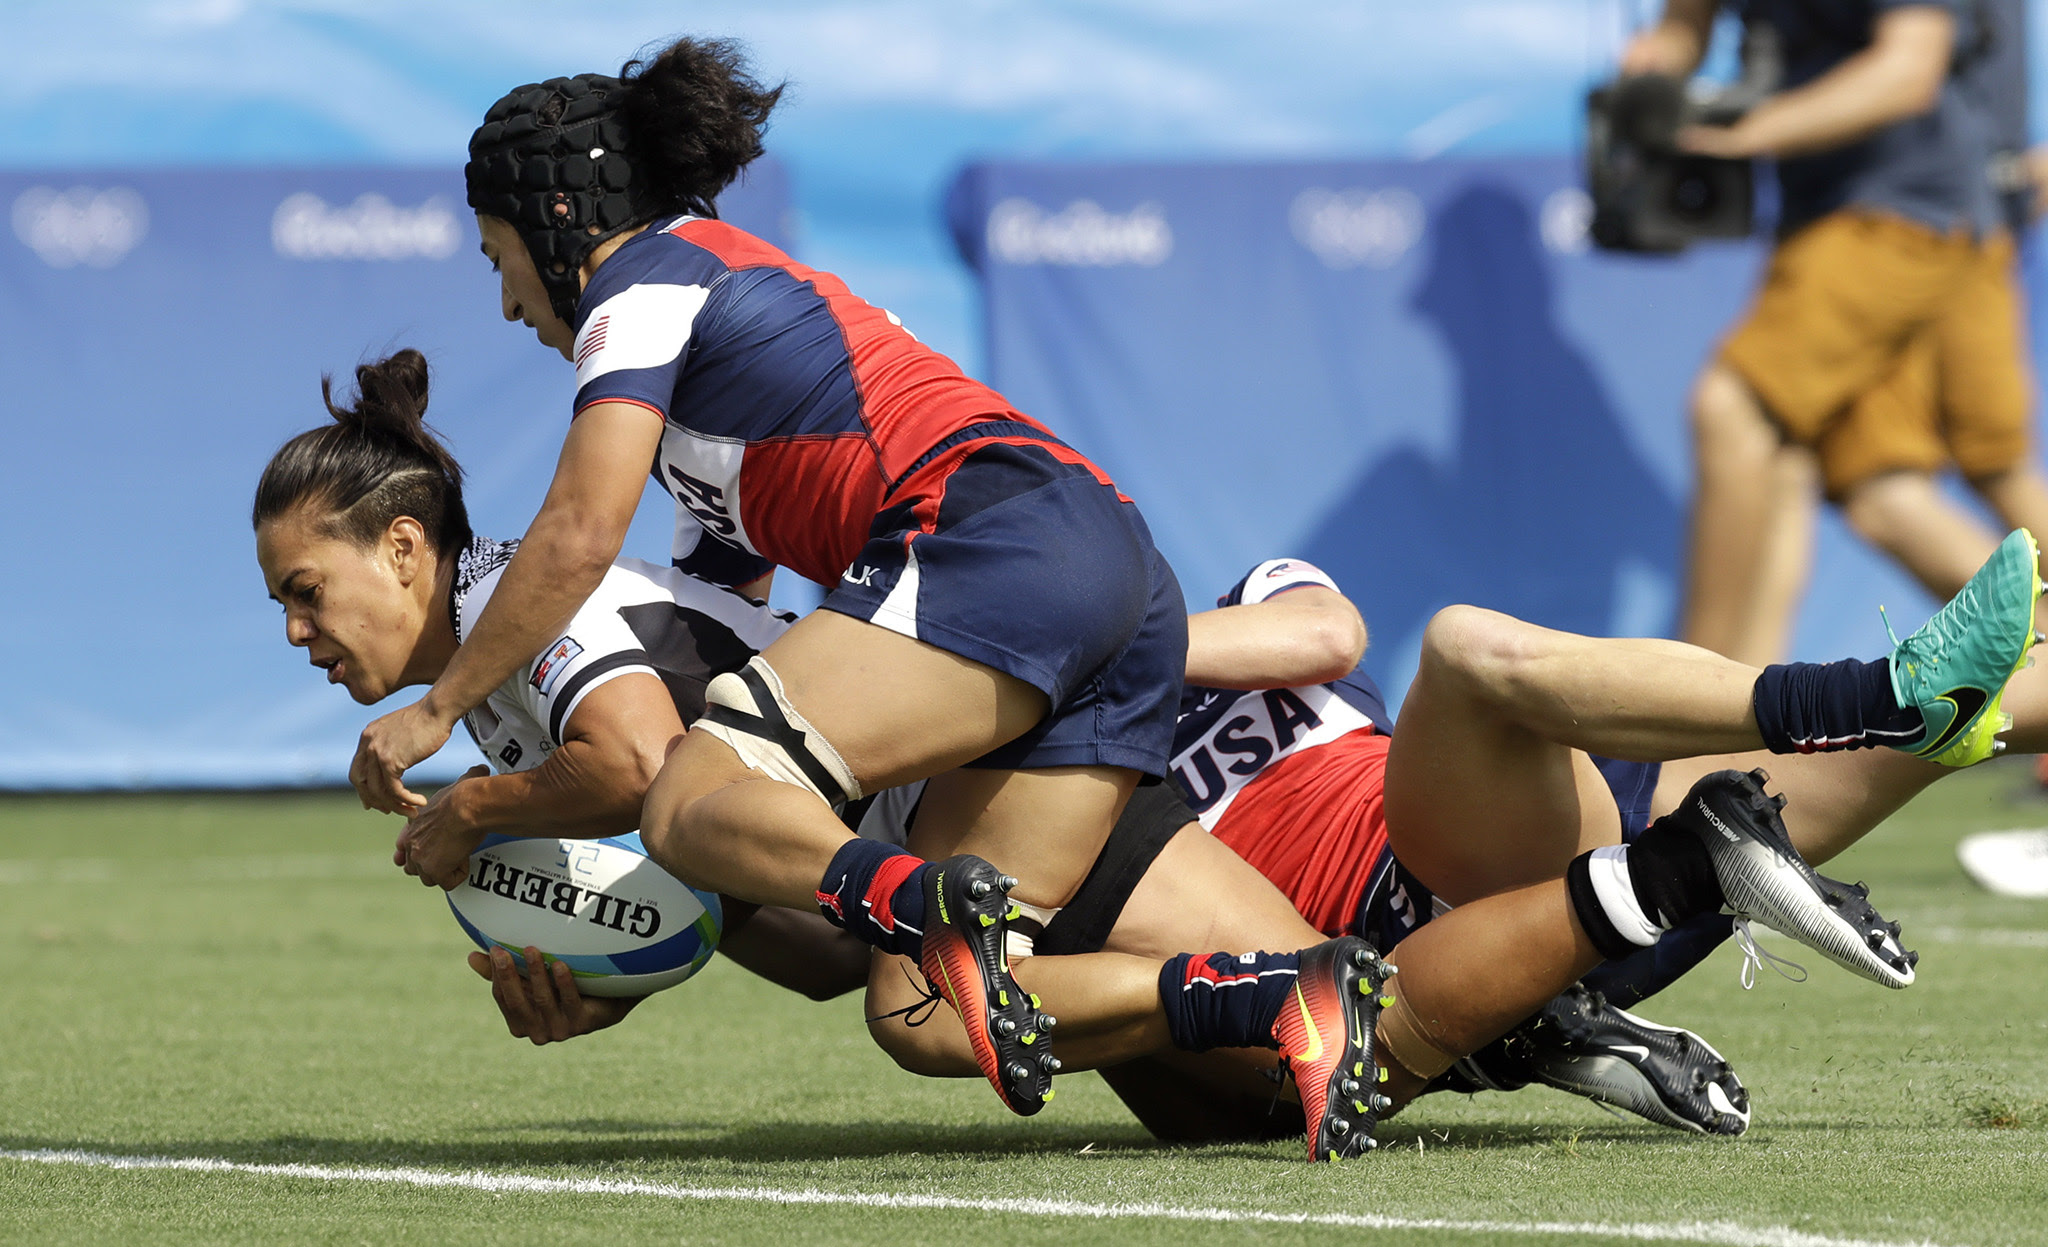 Fiji's Rebecca Tavo, left, scores a try as USA's Kelly Griffin, defends during the women's rugby sevens match at the Summer Olympics in Rio de Janeiro, Brazil, Monday, Aug. 8, 2016. (AP Photo/Themba Hadebe)